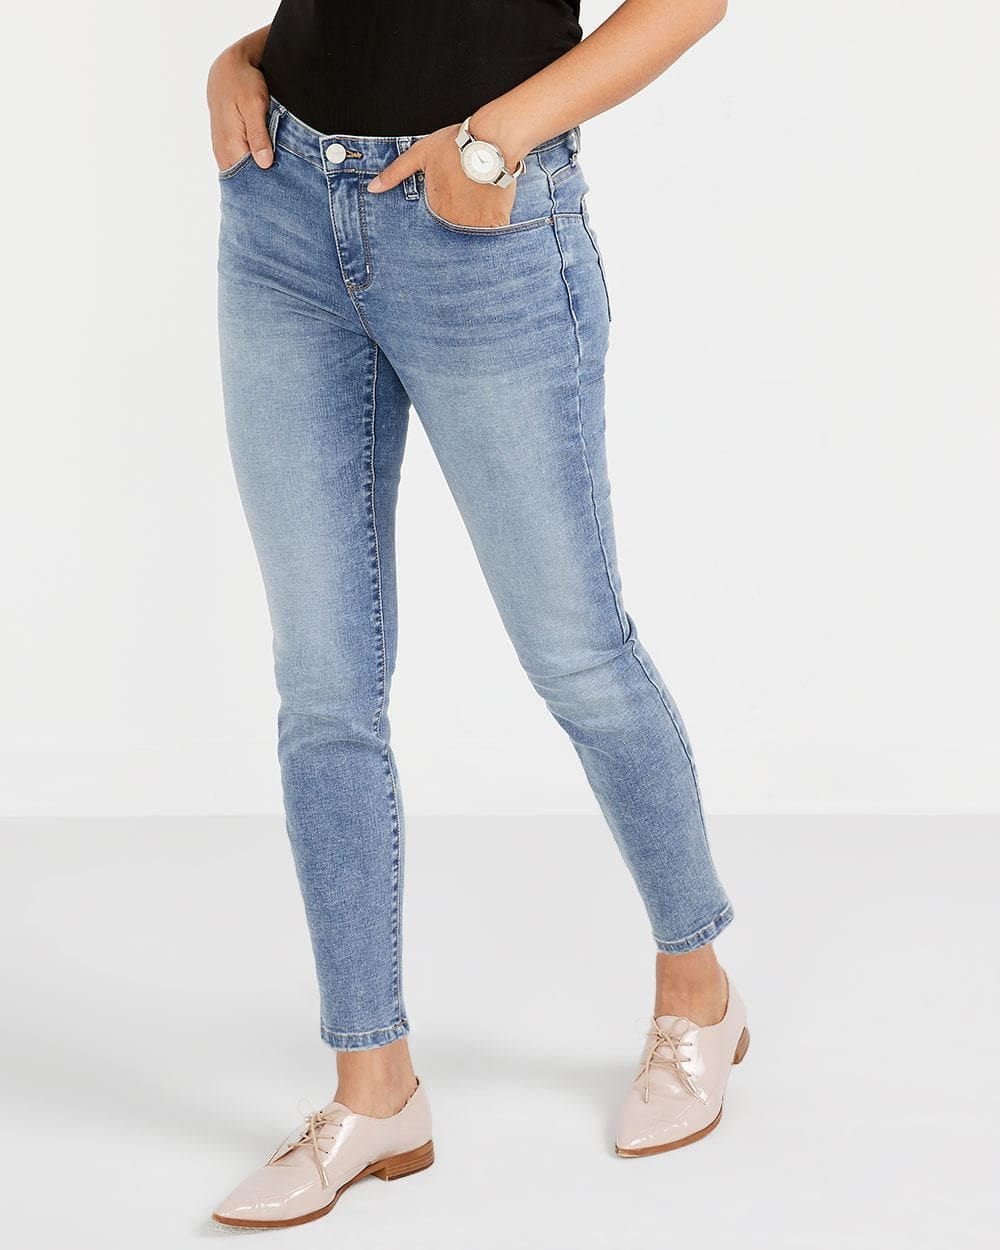 The Tall Skinny Light Wash Sculpting Ankle Jeans